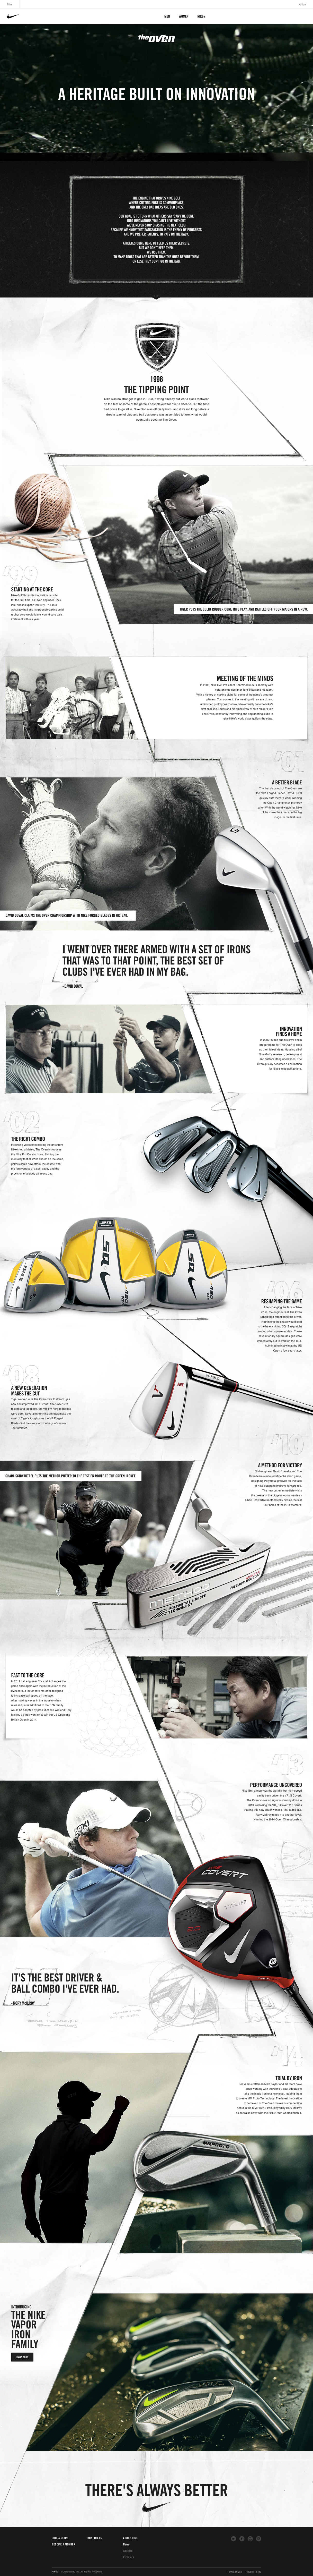 screencapture-nike-xf-en_gb-c-golf-the-oven-1557965250851.png